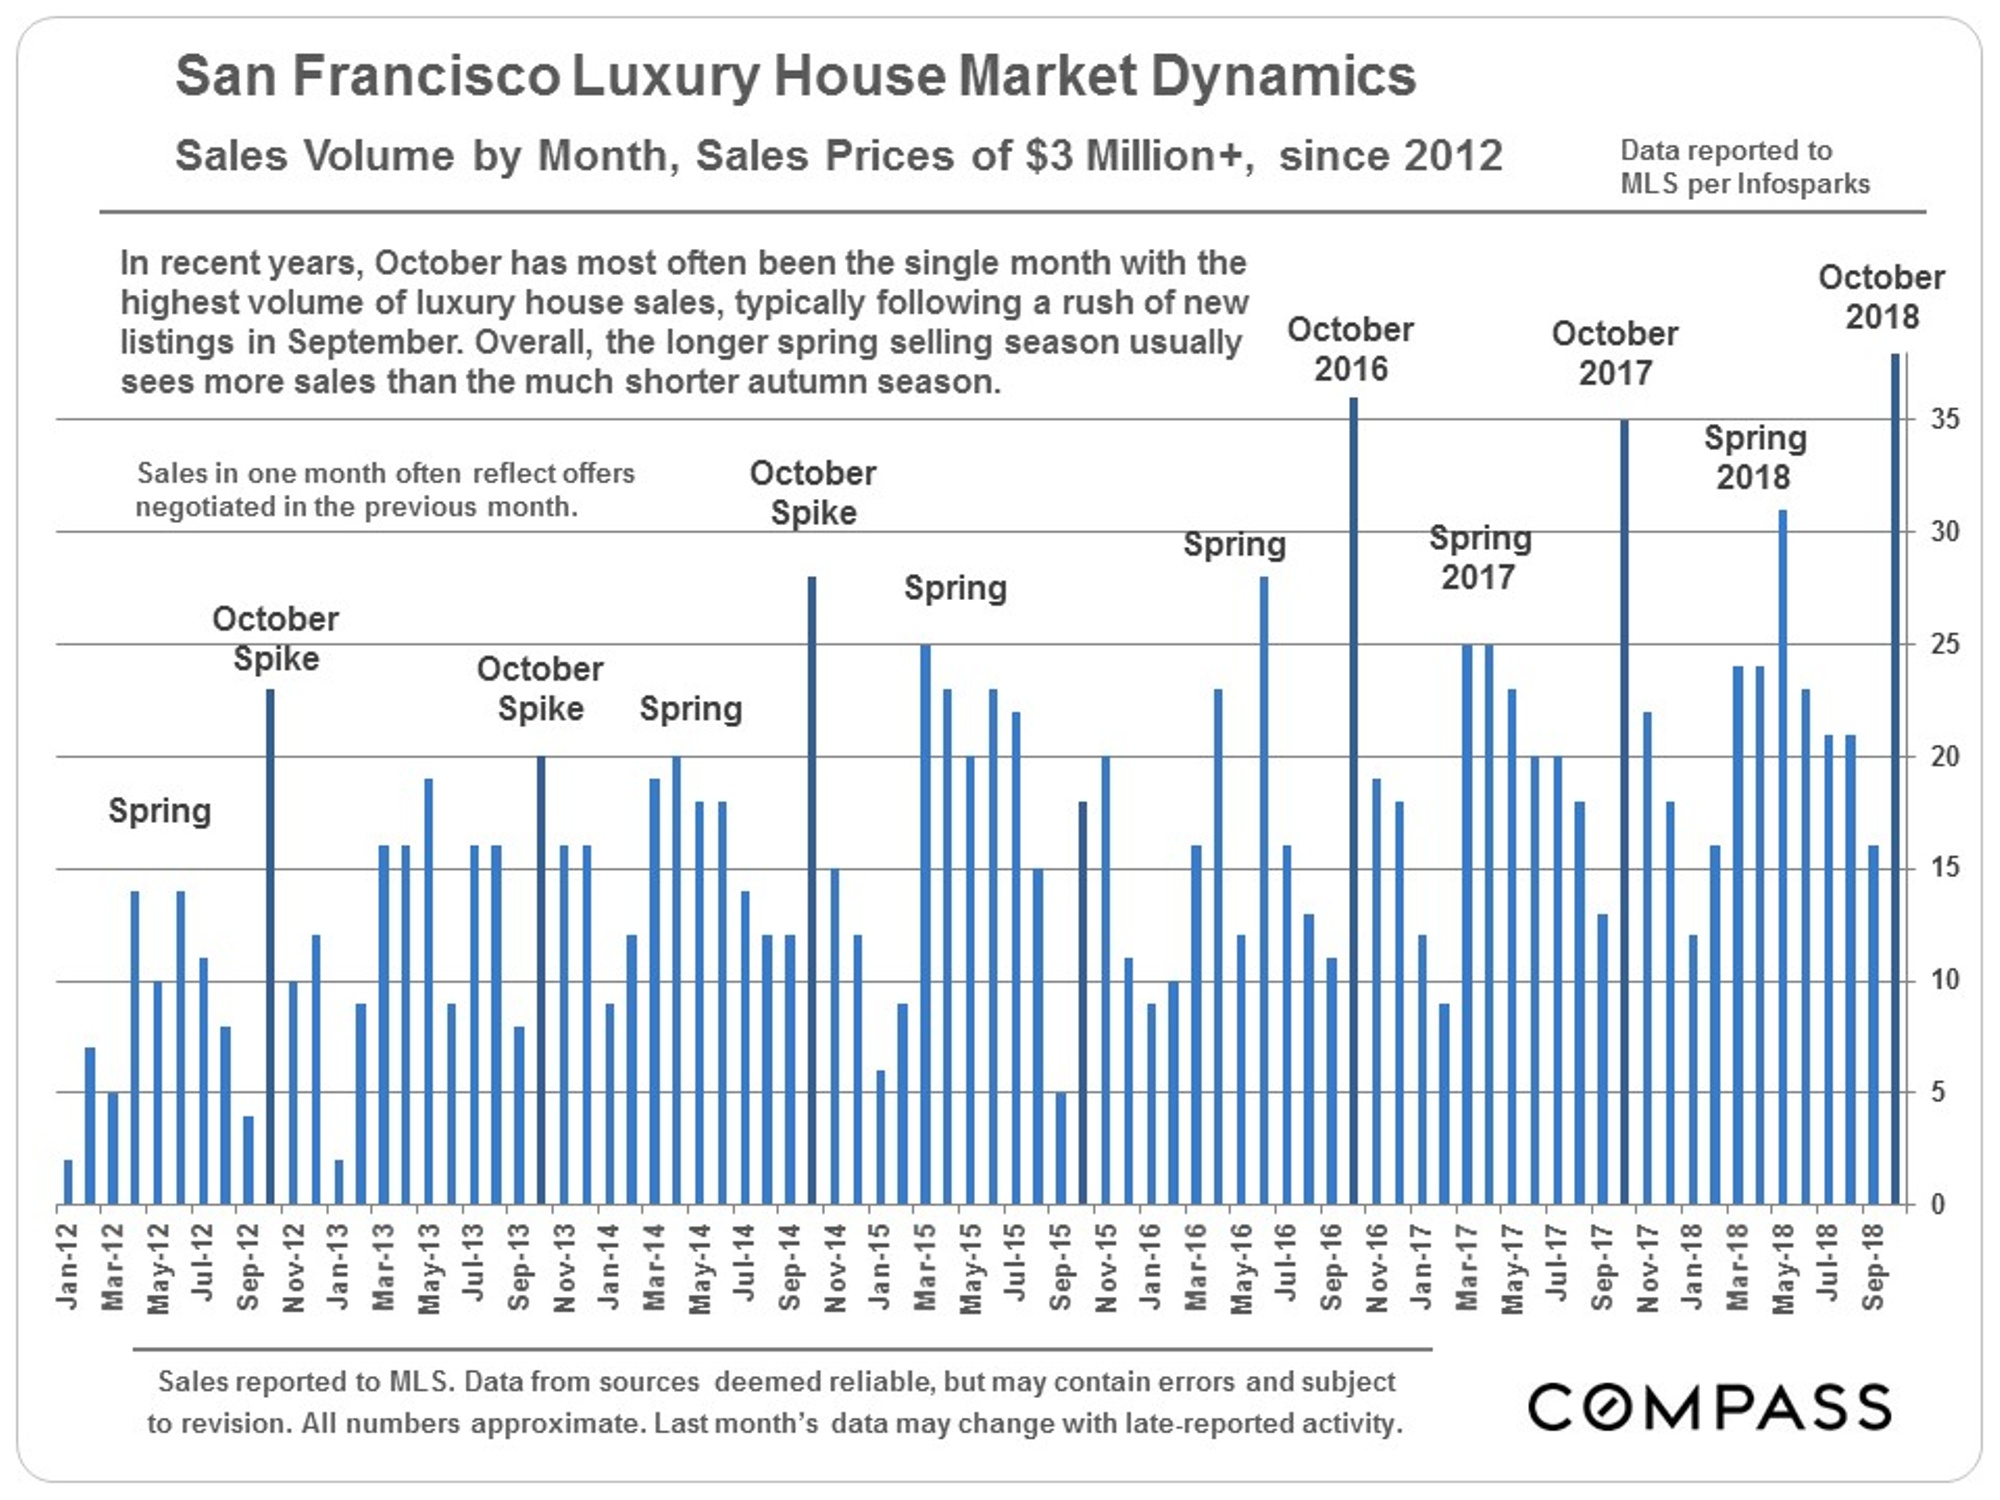 SF_LuxHouse_3m-plus_by-month.jpg